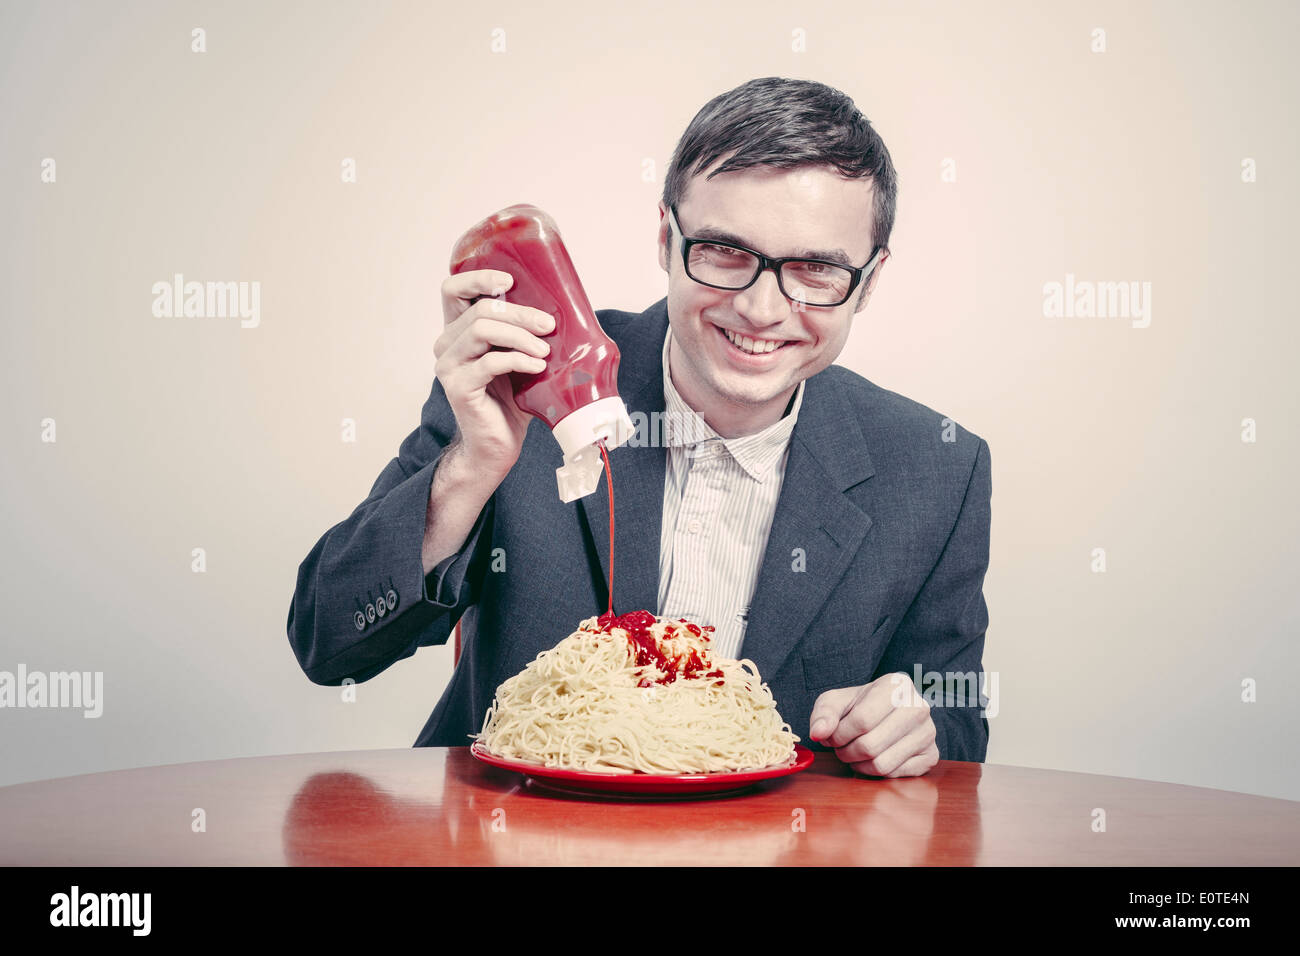 Positive consumerism concept. Happy businessman pouring ketchup on large dish of pasta. - Stock Image